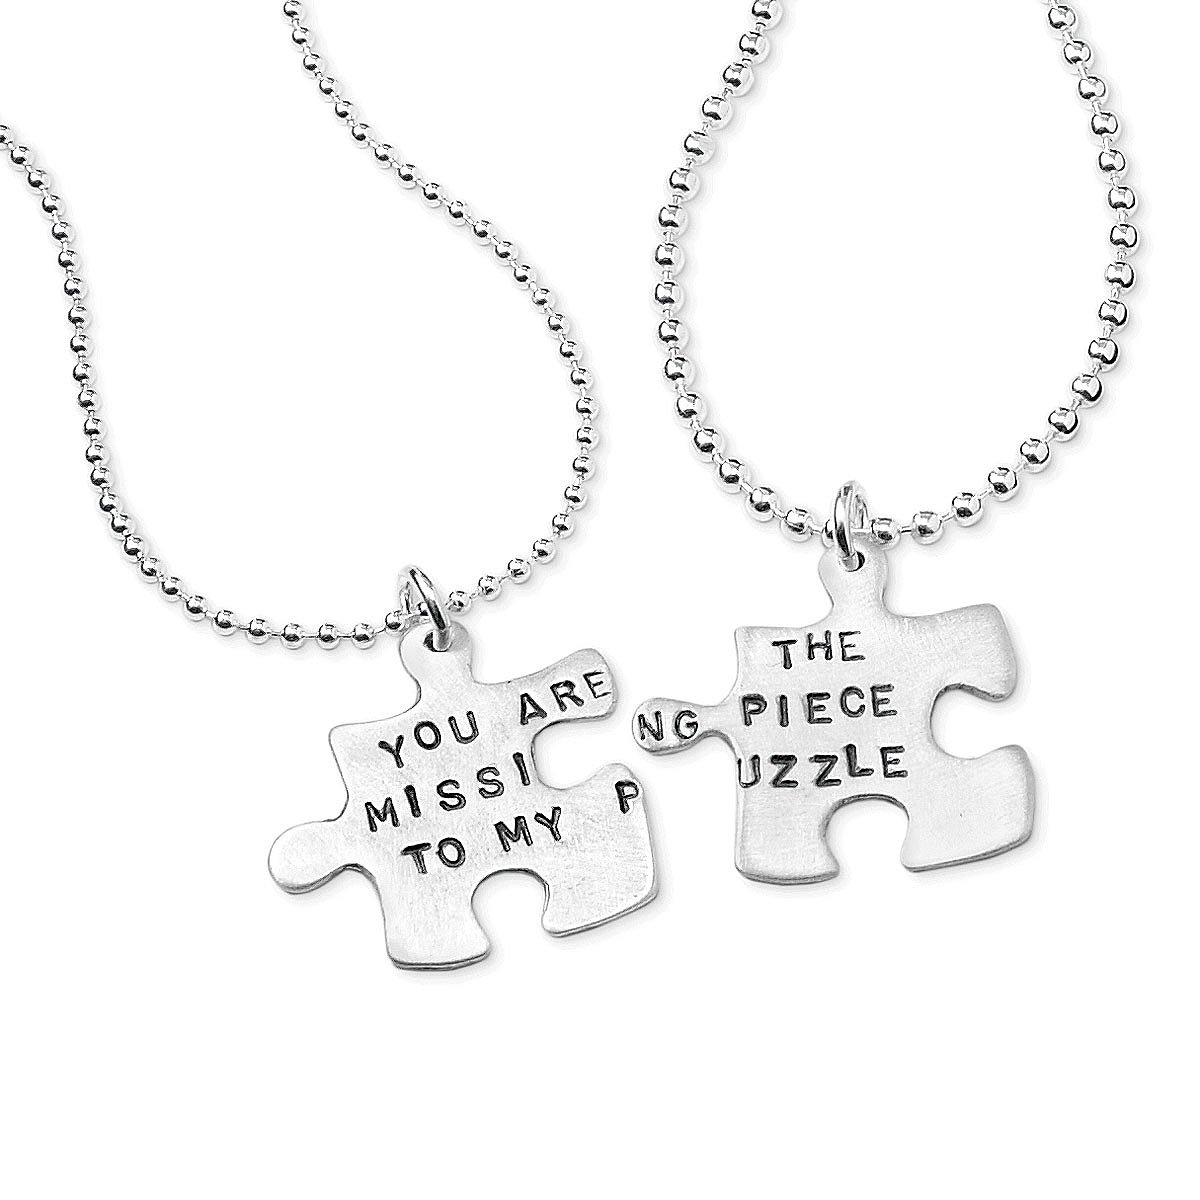 expo piece puzzle jigsaw the charm heart awareness products snake pendant chain necklace autism